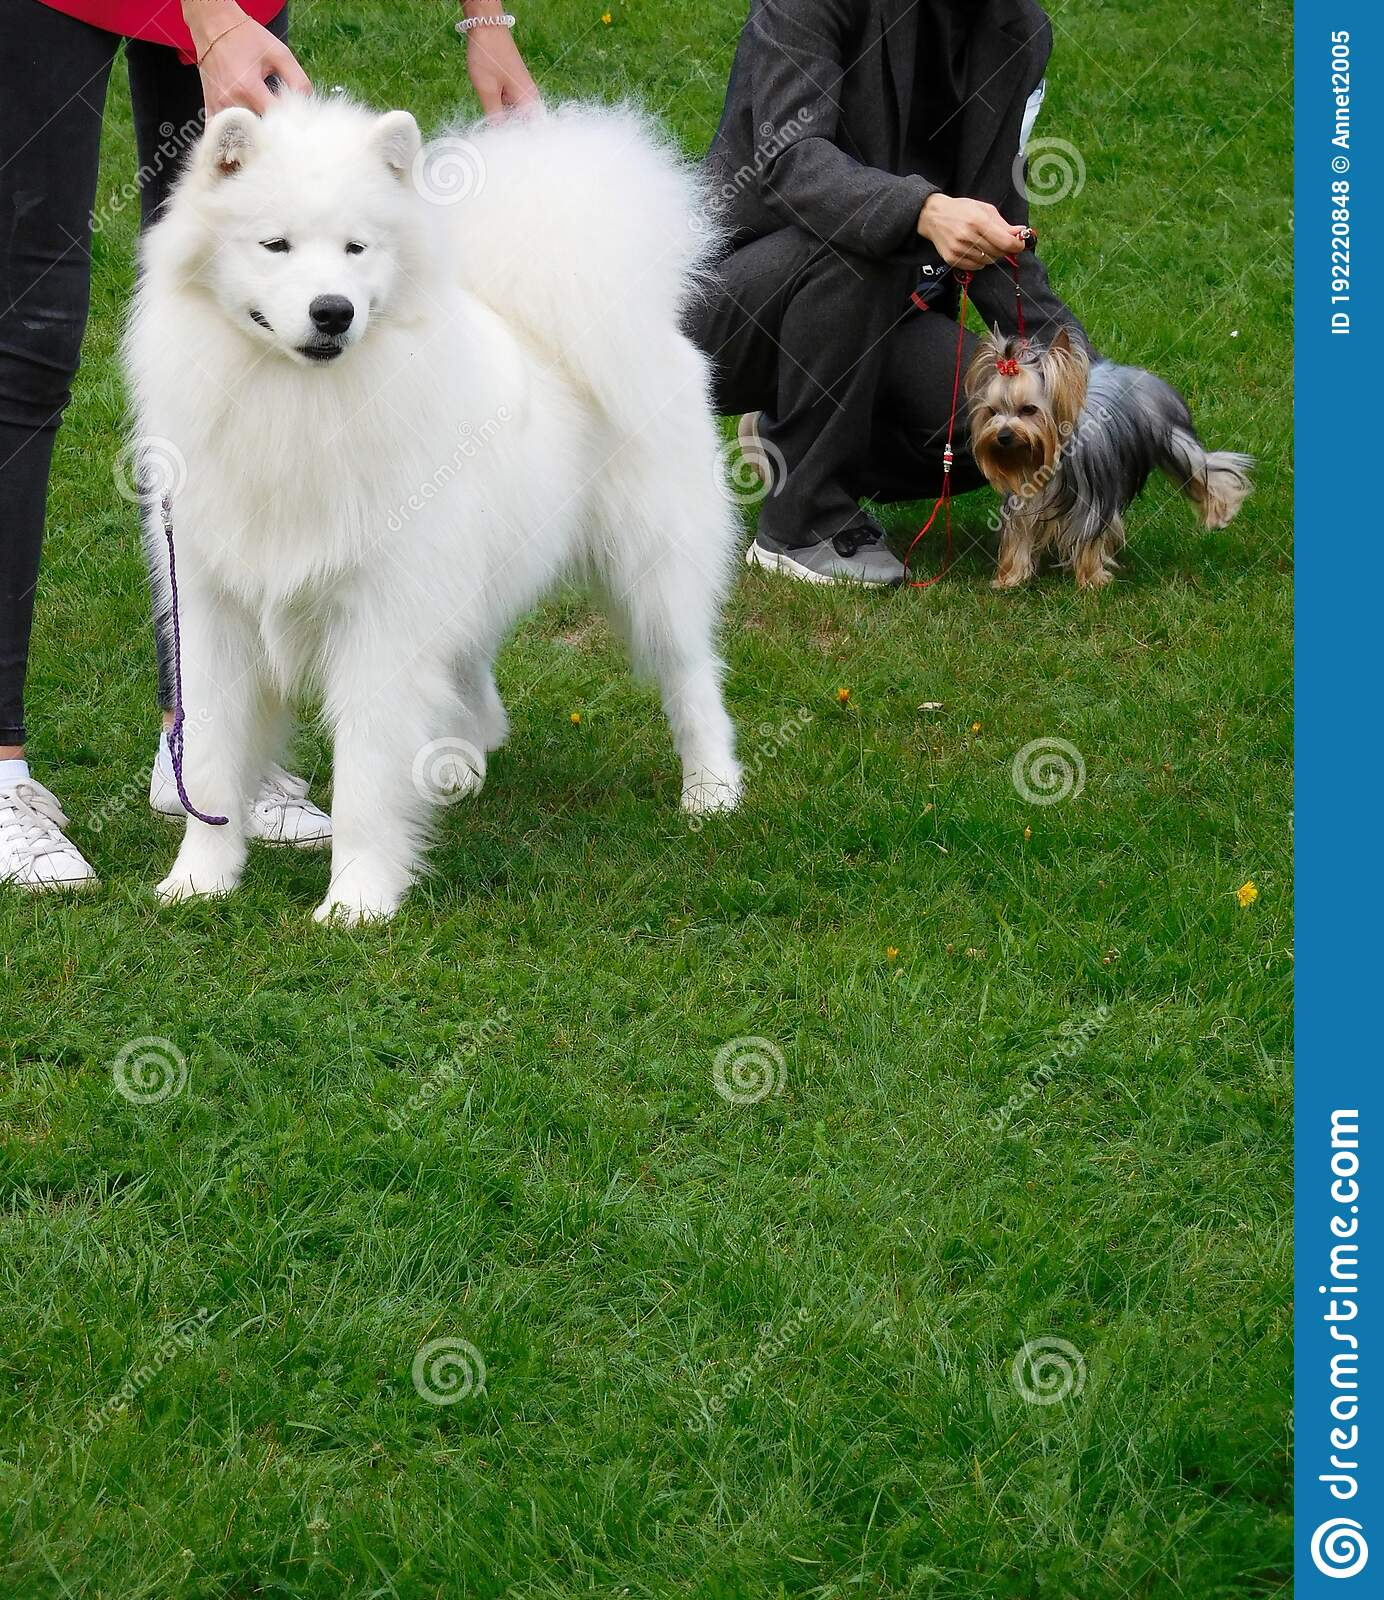 White Fluffy Cute Smiling Samoyed Dog And Adorable Little Yorkshire Terrier On A Background Of Green Grass At A Dog Show Stock Photo Image Of Lawn Jelkier 192220848